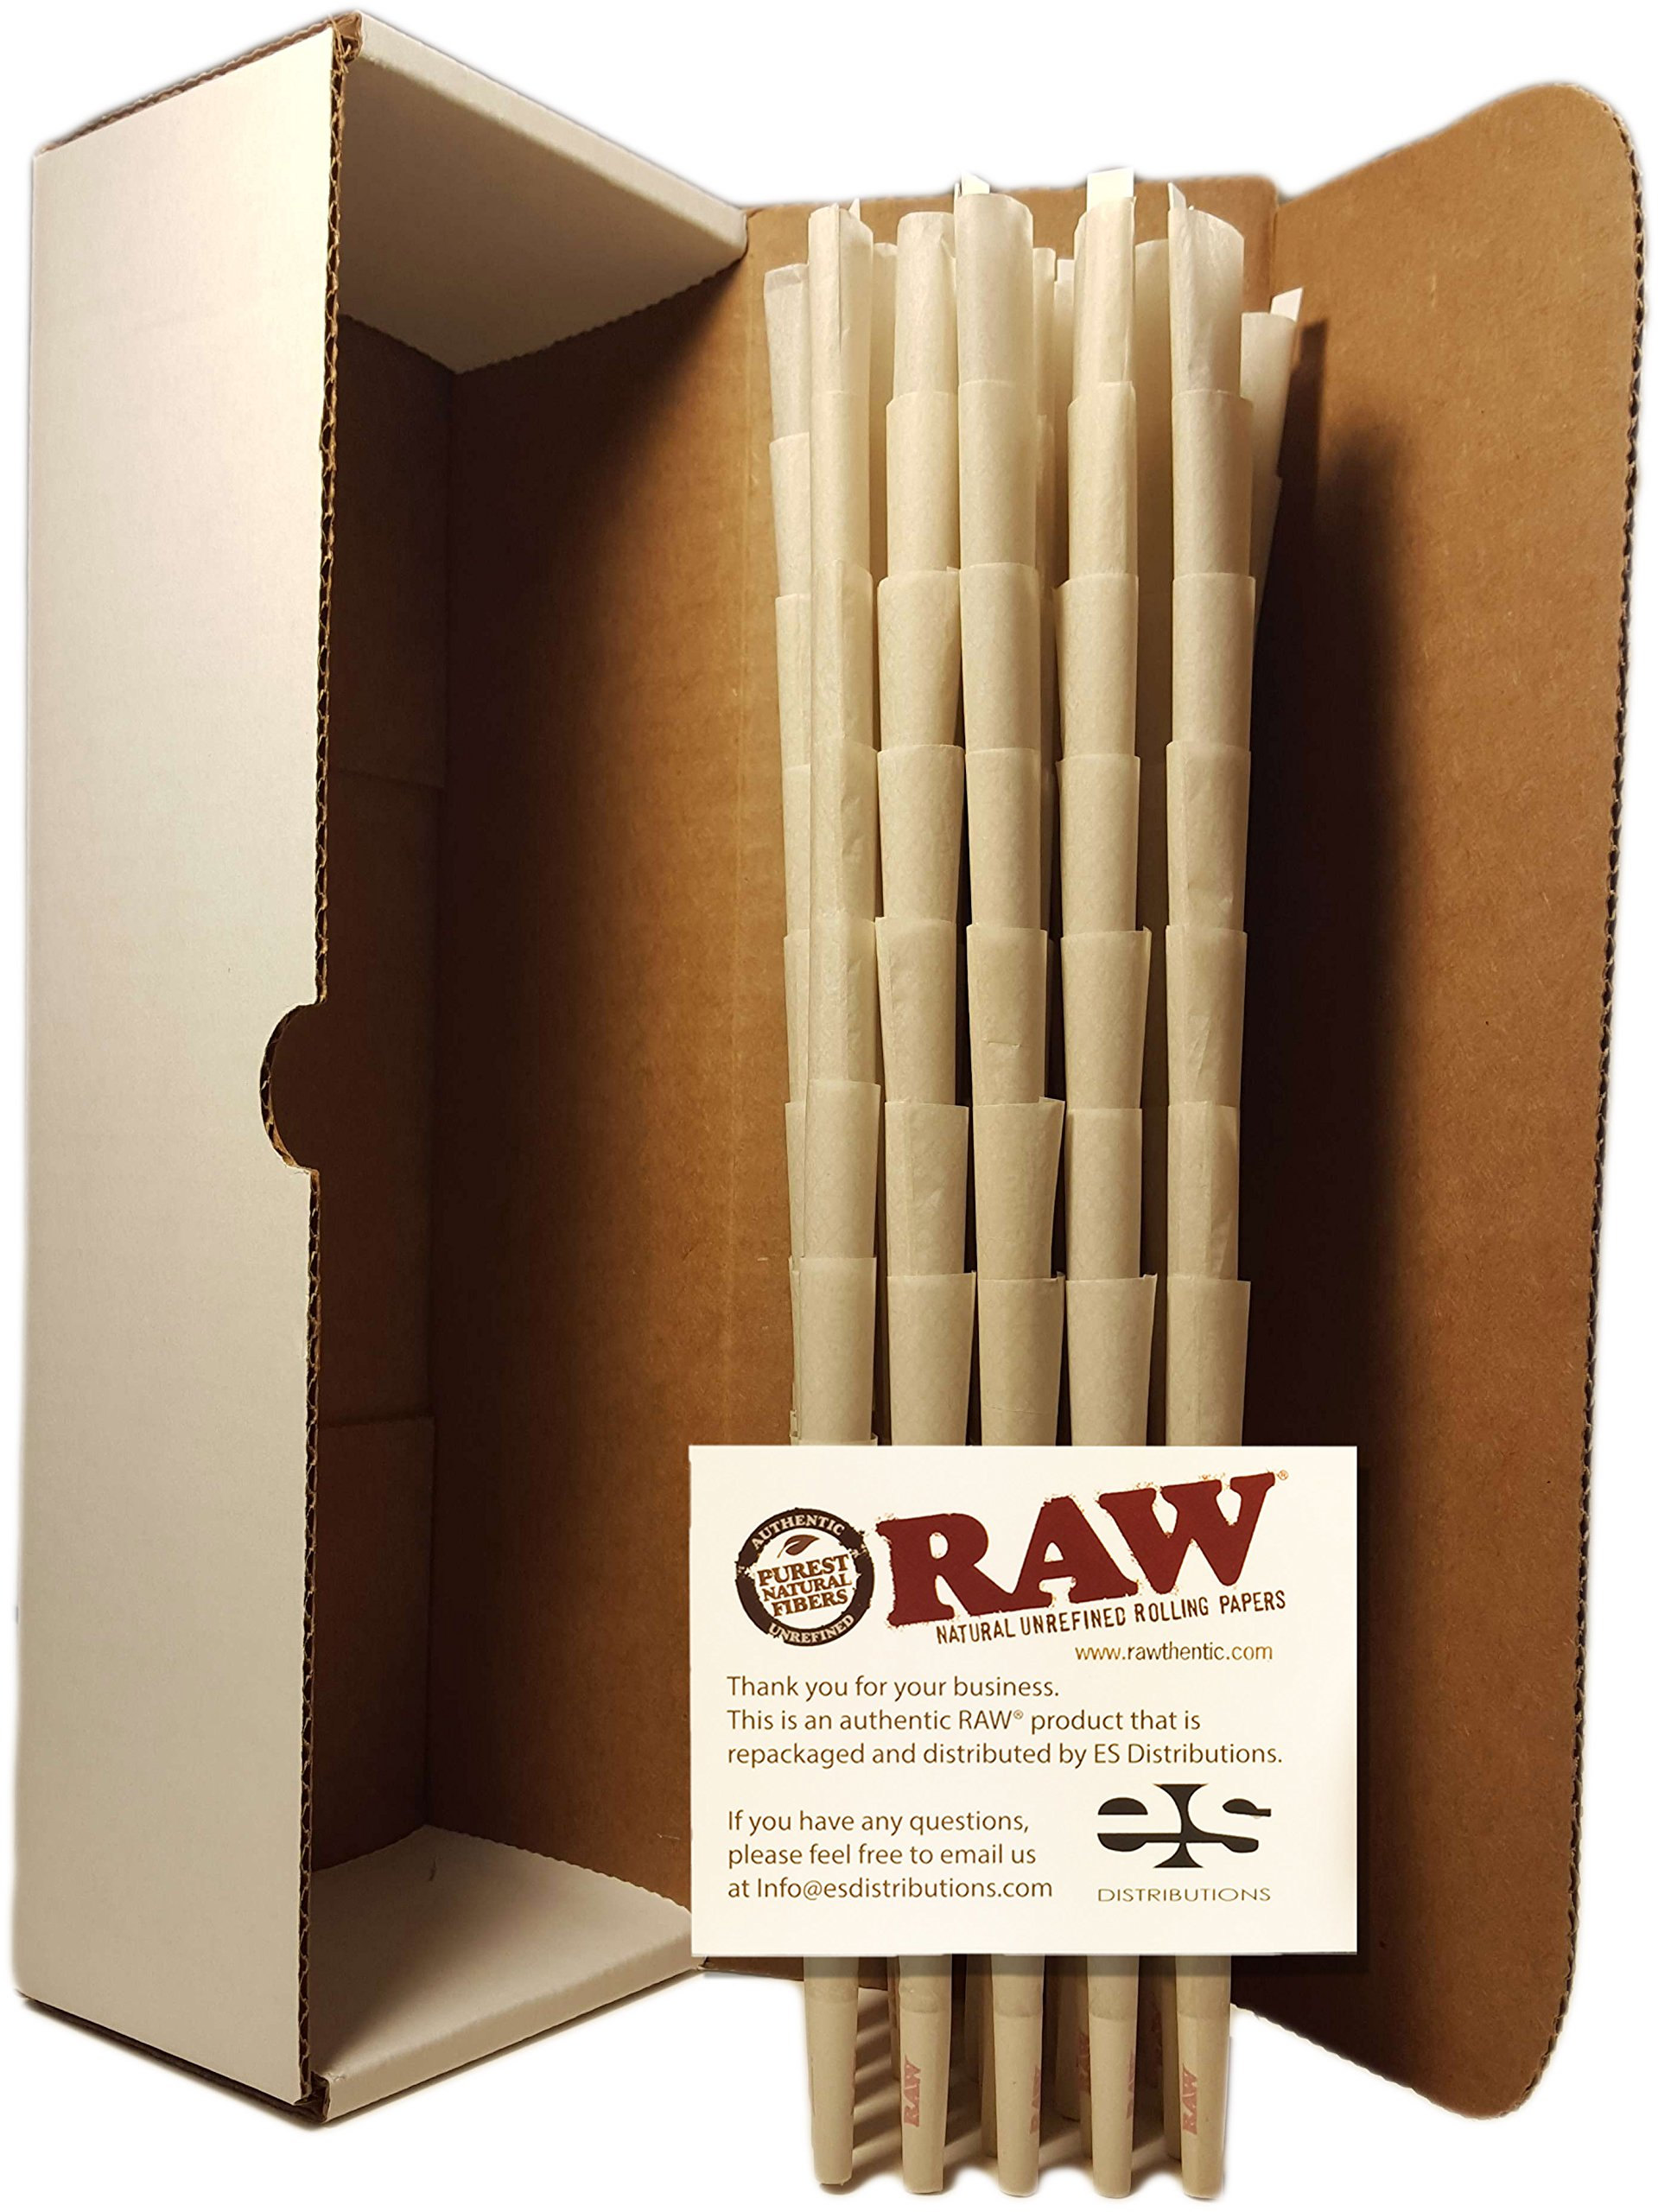 New Organic King Size RAW ® Authentic Pre-Rolled Cones With Filter (200 Pack) Pure Raw Hemp